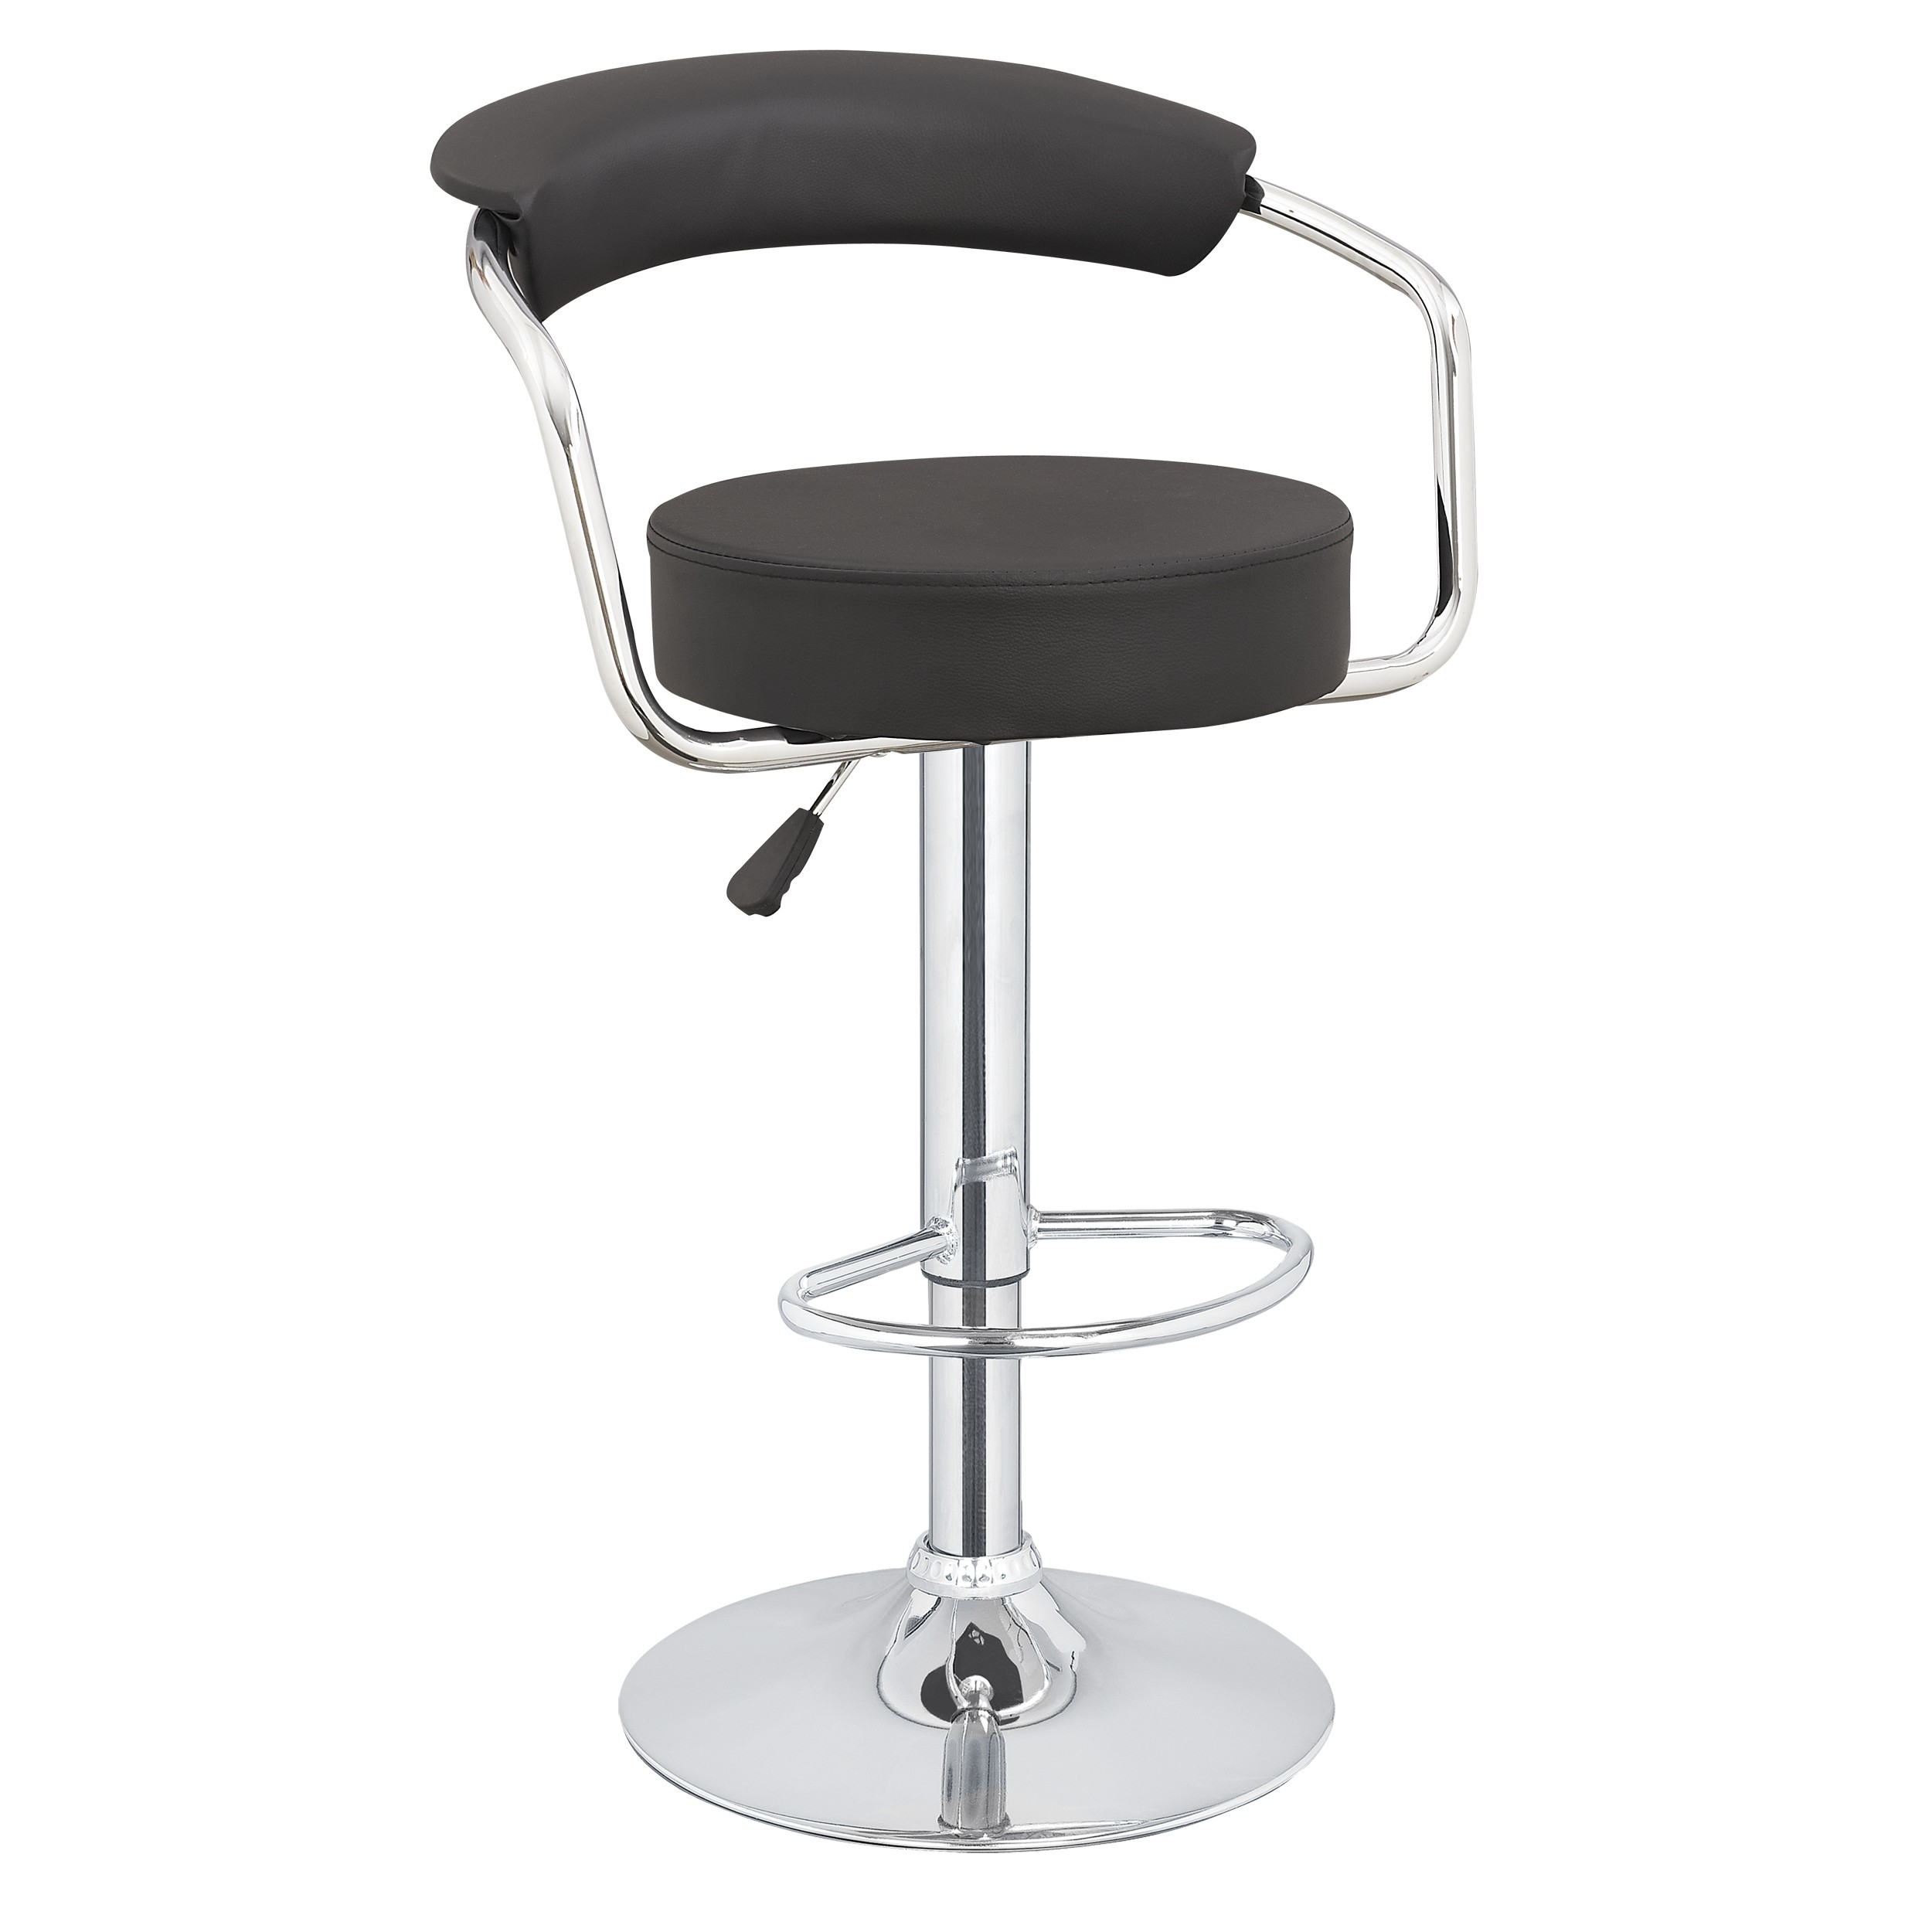 2-x-Homegear-M1-50s-Diner-Adjustable-Swivel-  sc 1 st  eBay : black faux leather bar stool - islam-shia.org